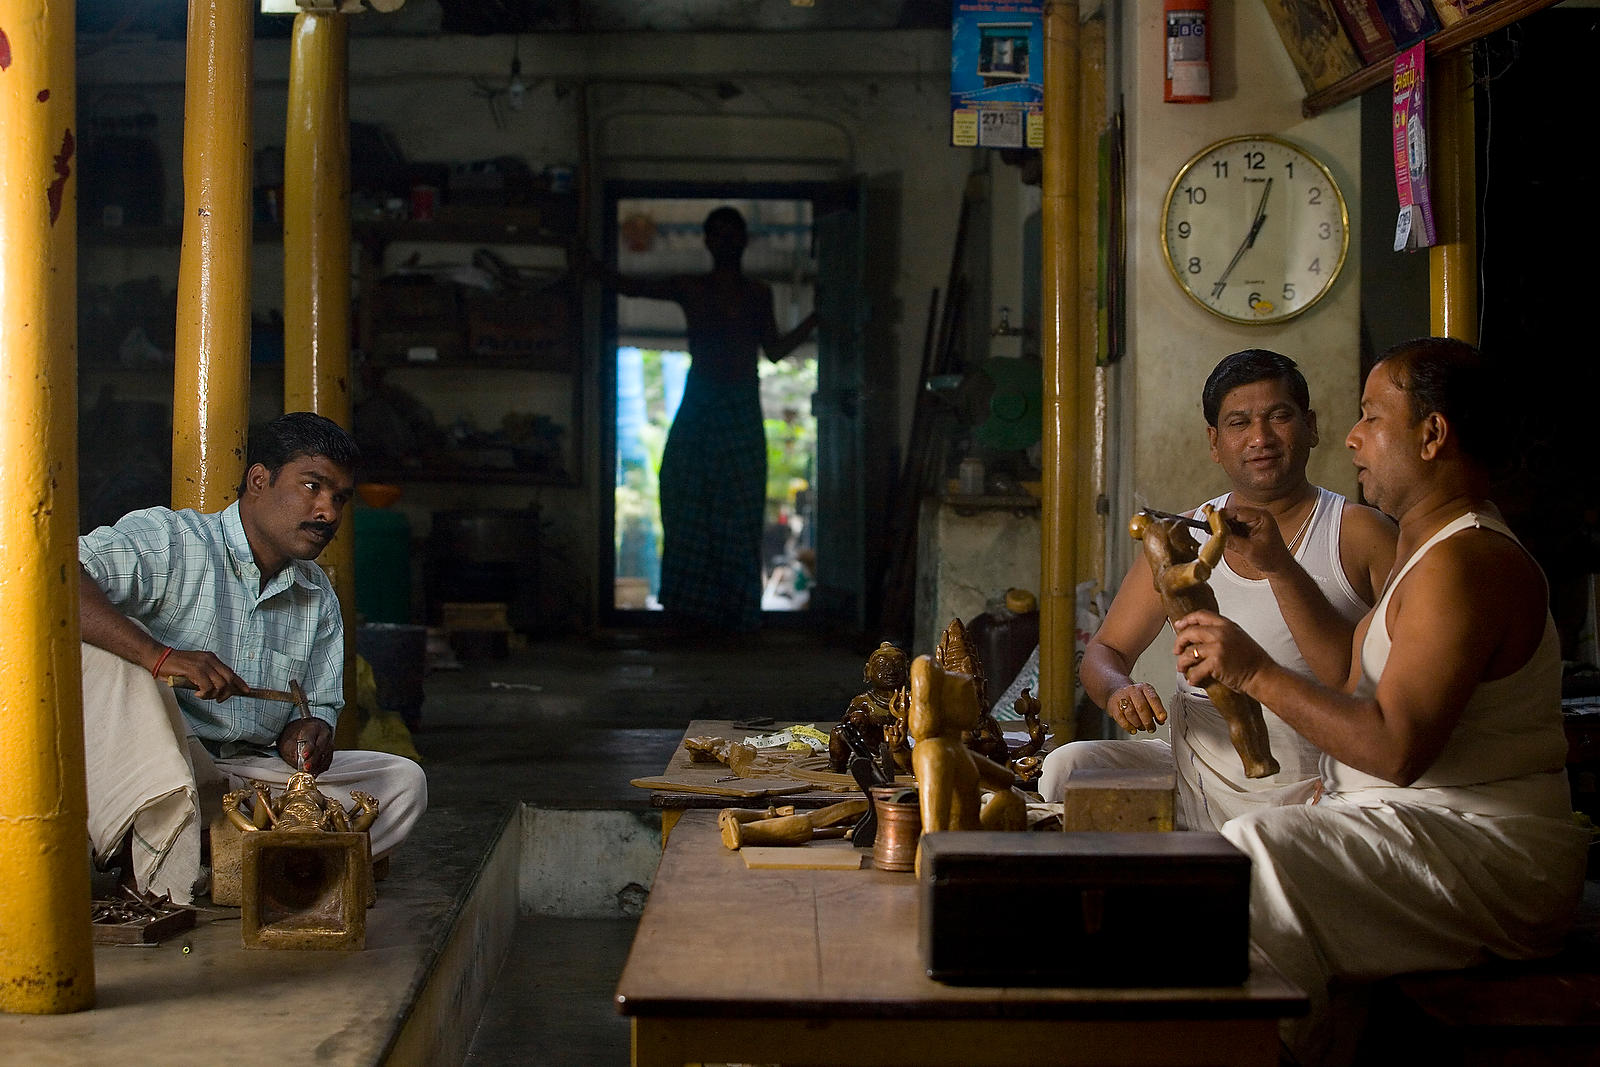 Master craftsmen Radhakhrishna Stpathy and his brother Srikanda mould an icon in wax in their workshop in Swamimalai. The cur...